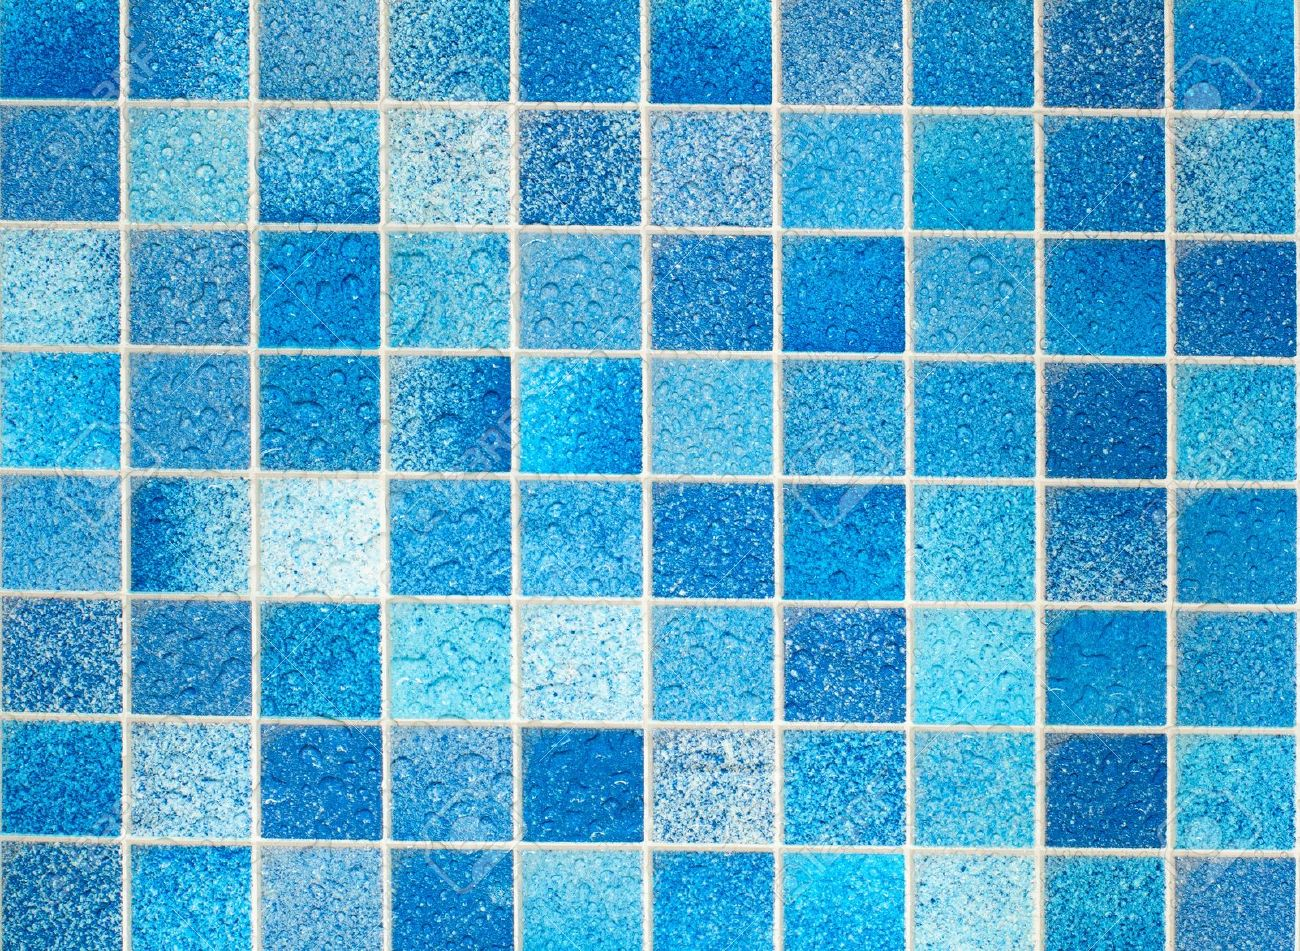 Blue Tiles In Bathroom With Water Drops Stock Photo Picture And